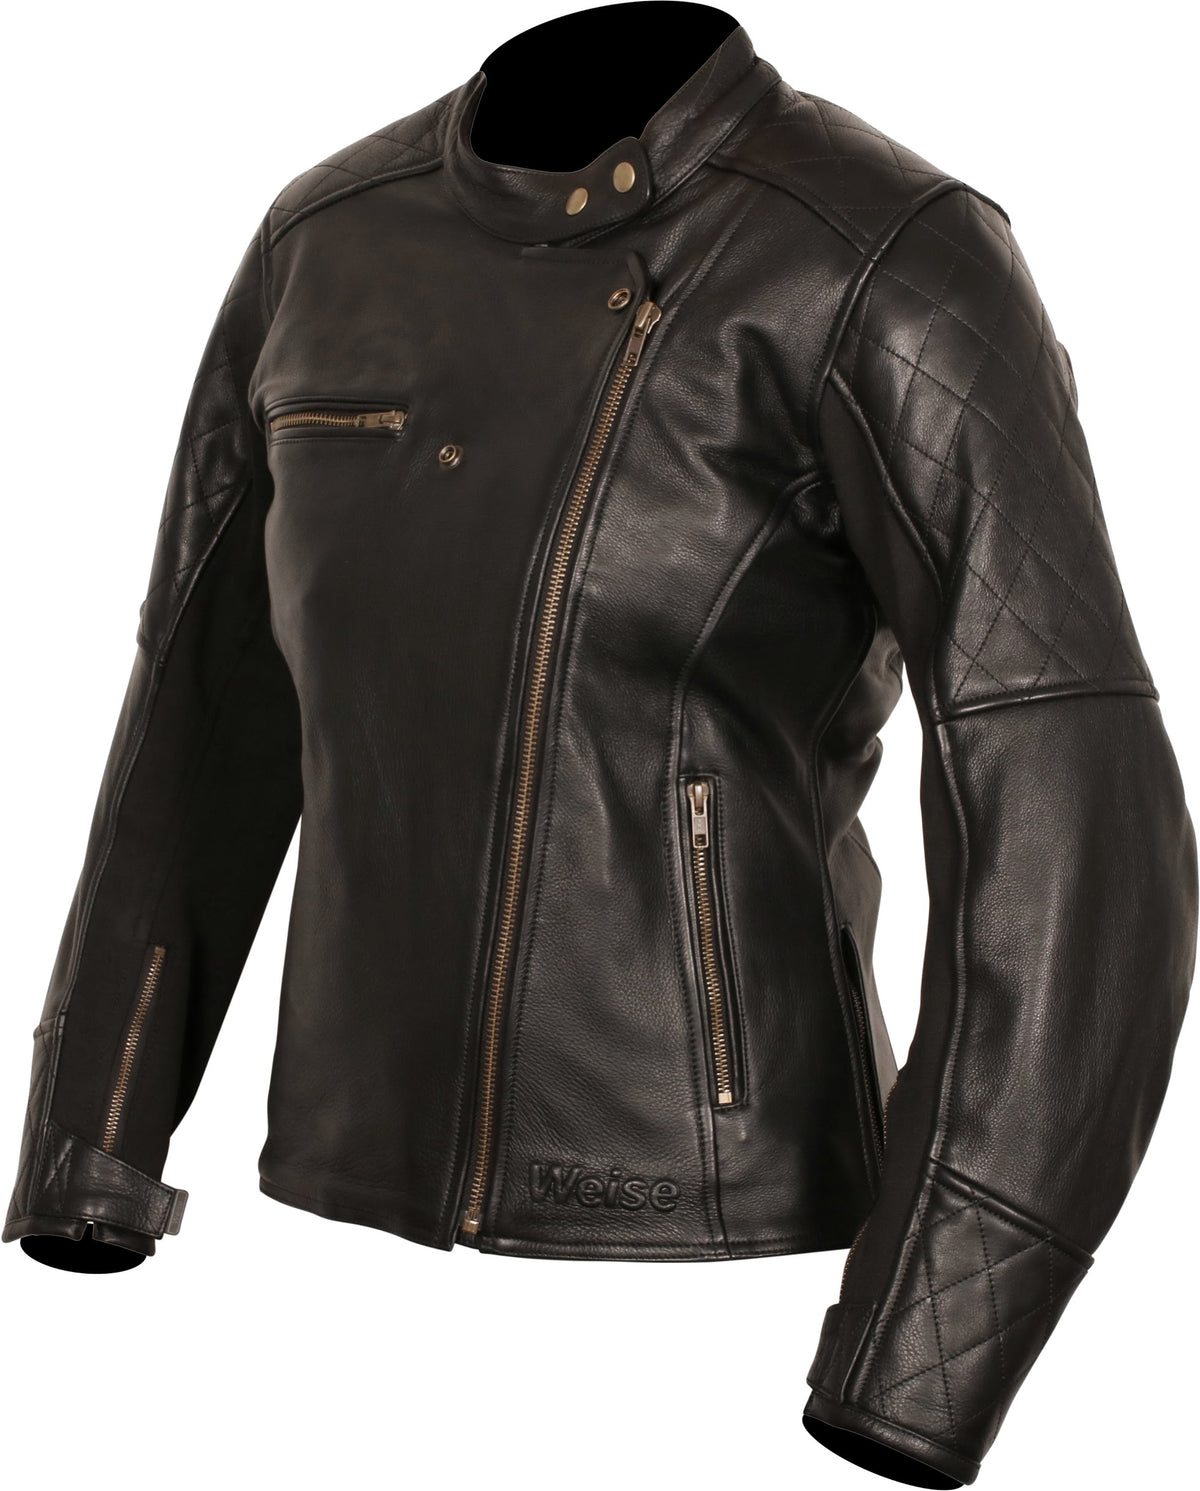 Chicago Ladies, Ladies Jacket, Weise - Averys Motorcycles